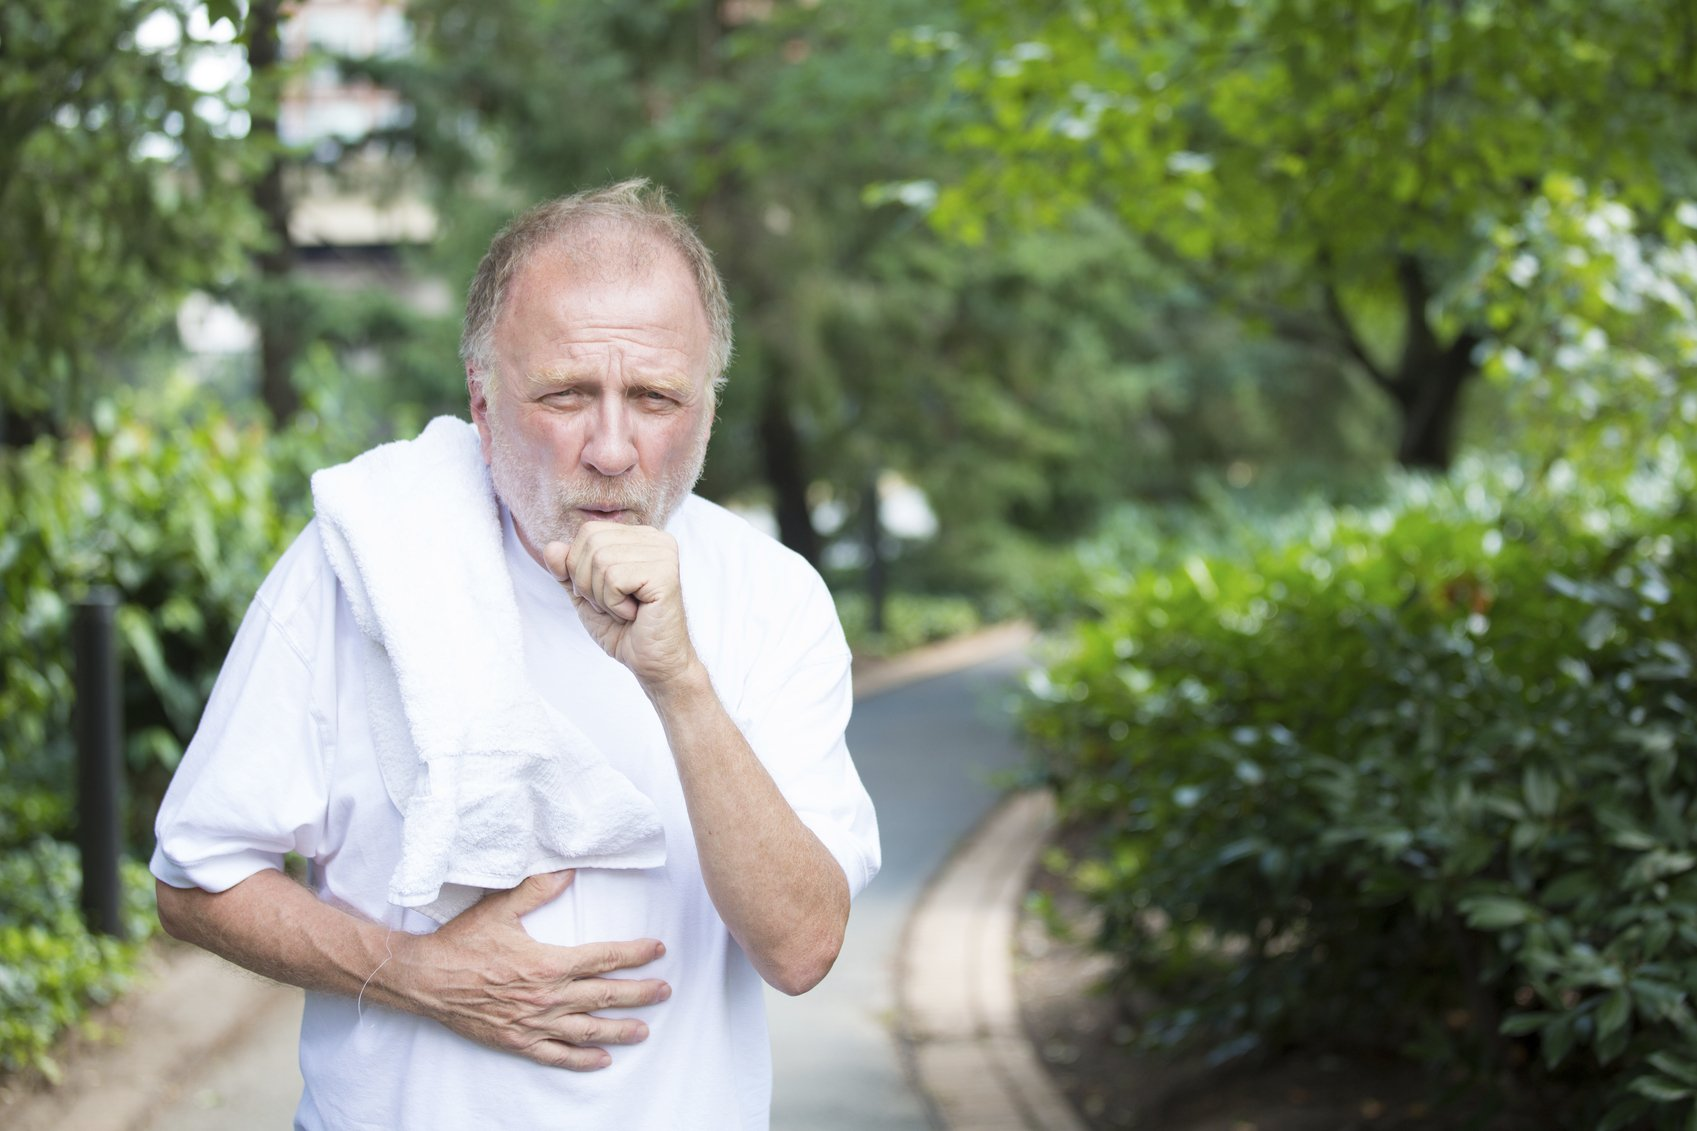 elderly man covering his mouth to cough